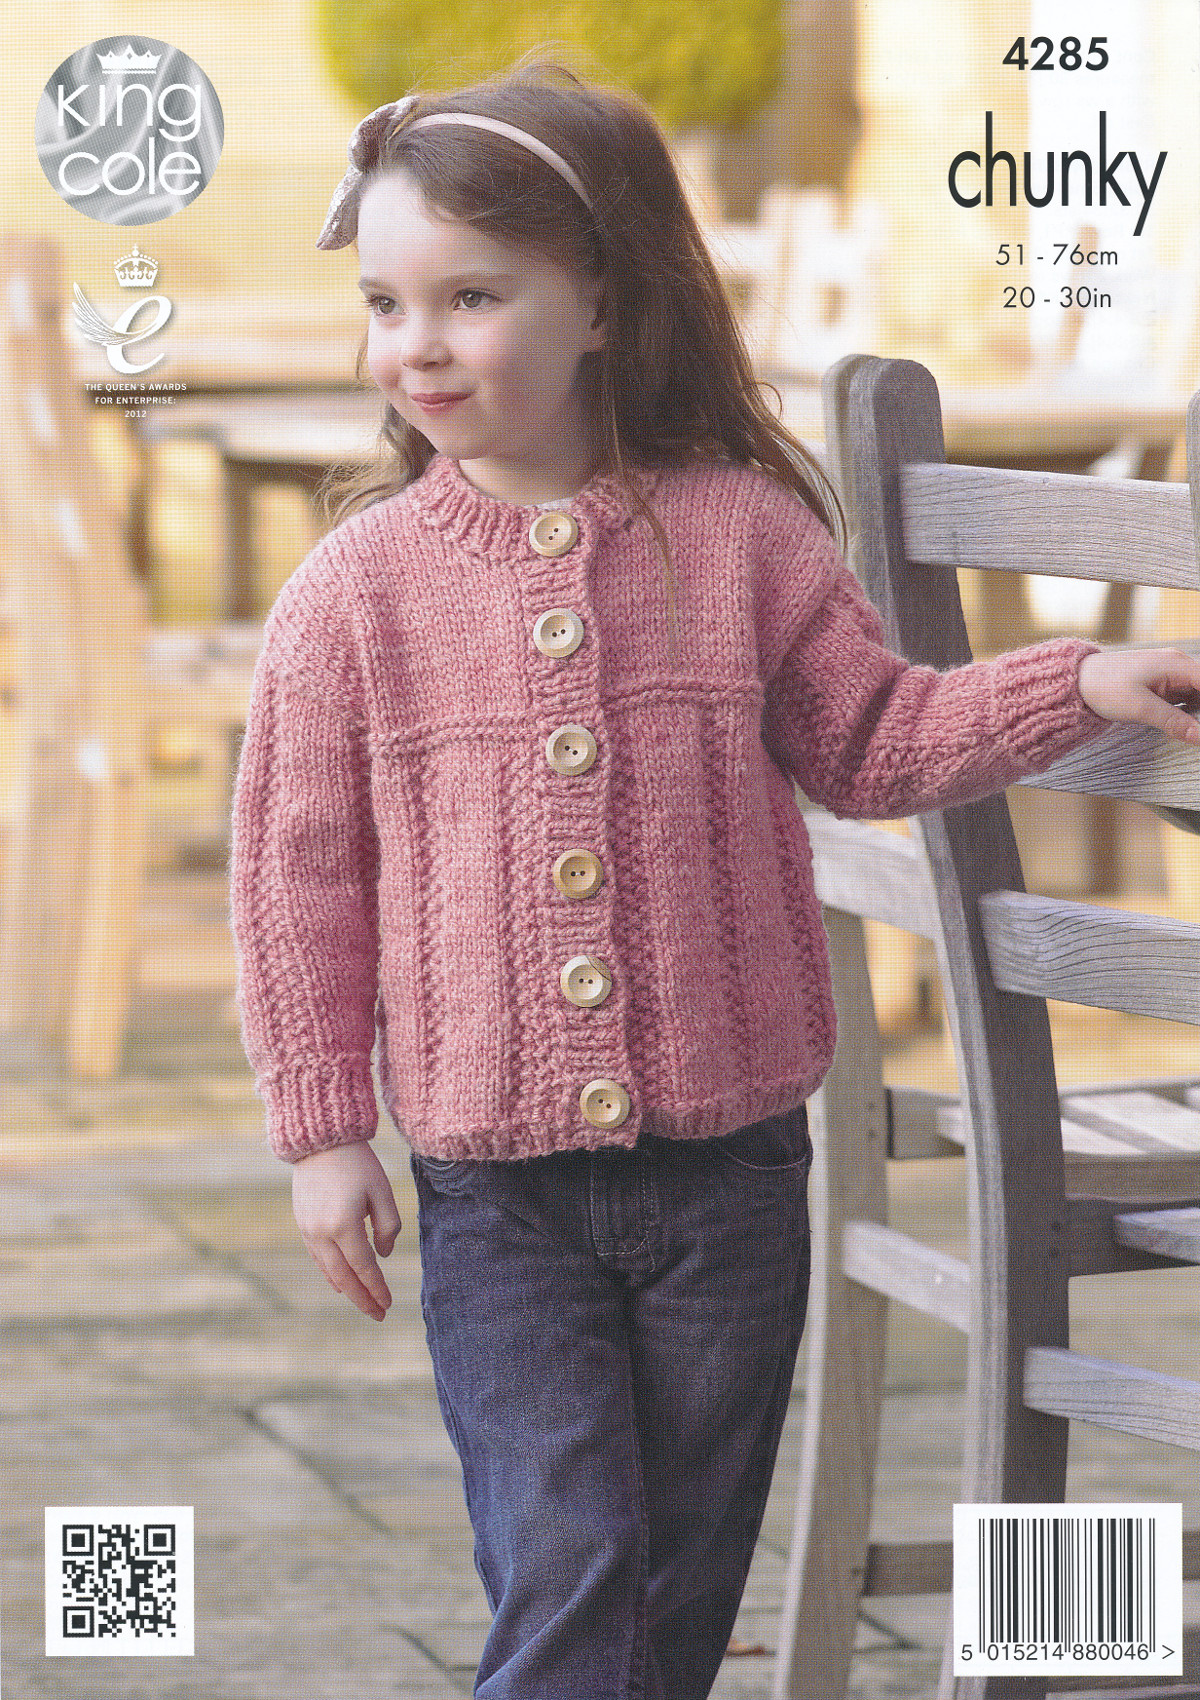 Knitting Pattern Chunky Wool Cardigan : Kids Chunky Knitting Pattern King Cole Childrens Sweater Jumper Cardigan 4285...